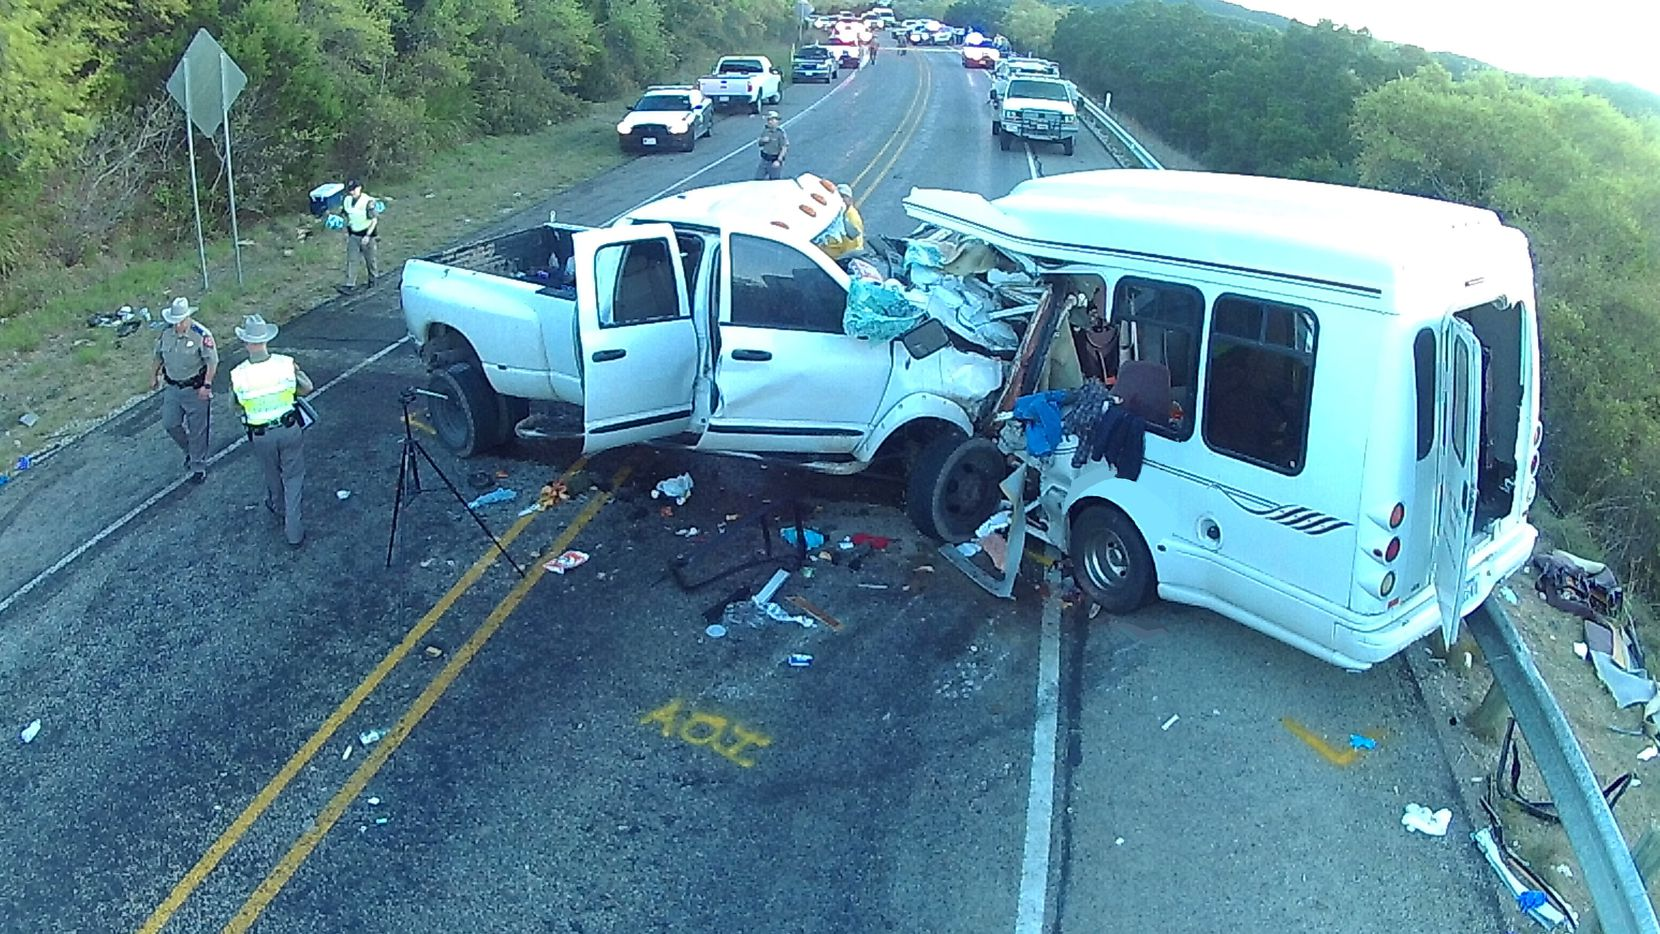 A view of the accident involving Jack Dillon Young's pickup and a bus carrying members of First Baptist New Braunfels. Thirteen people in the bus were killed.